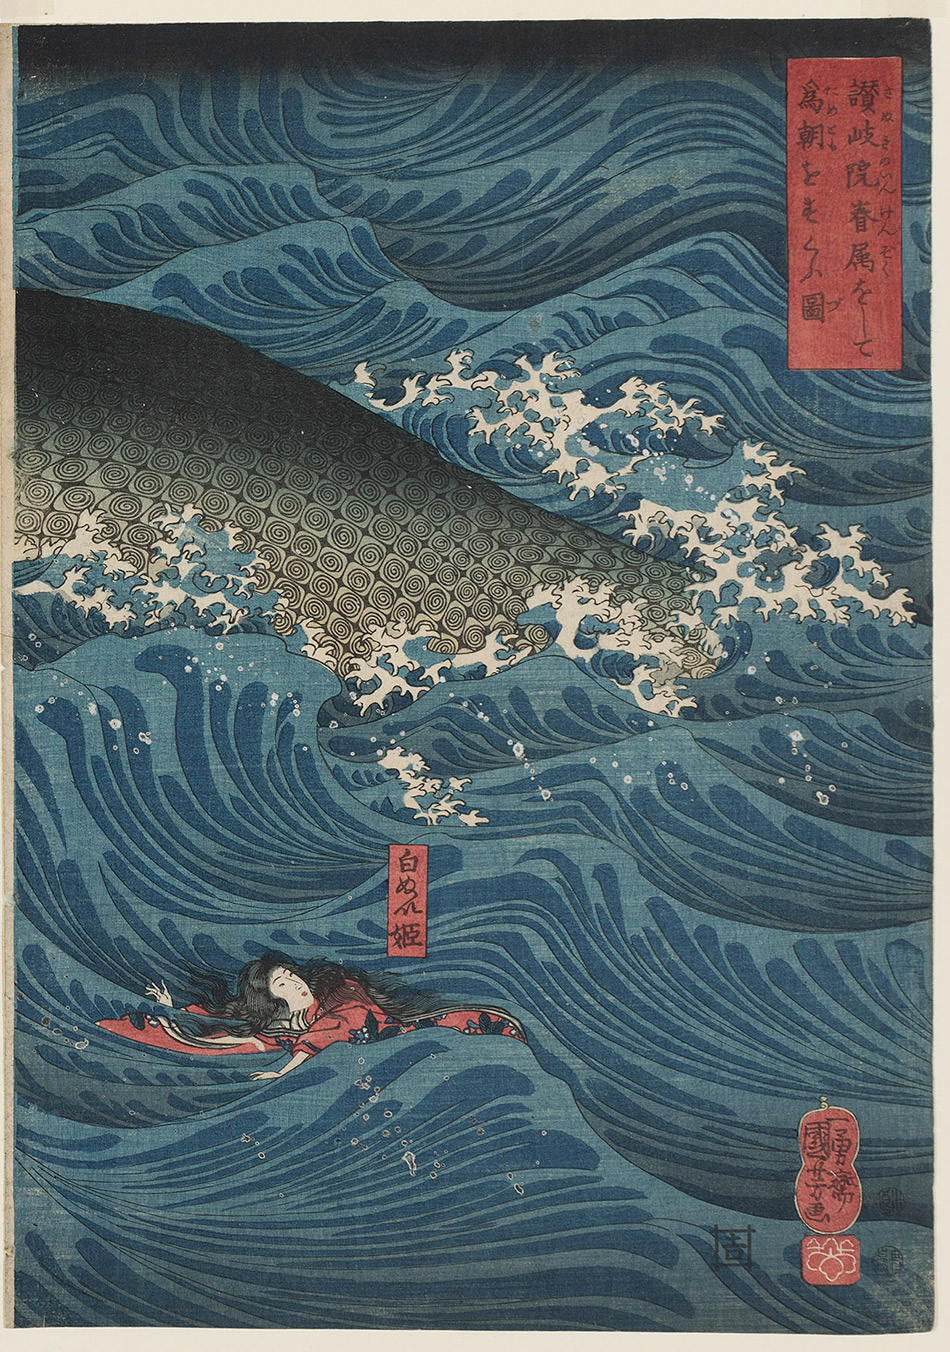 museum-of-fine-arts-boston_13-c.-The-Former-Emperor-c_Utagawa-Kuniyoshi